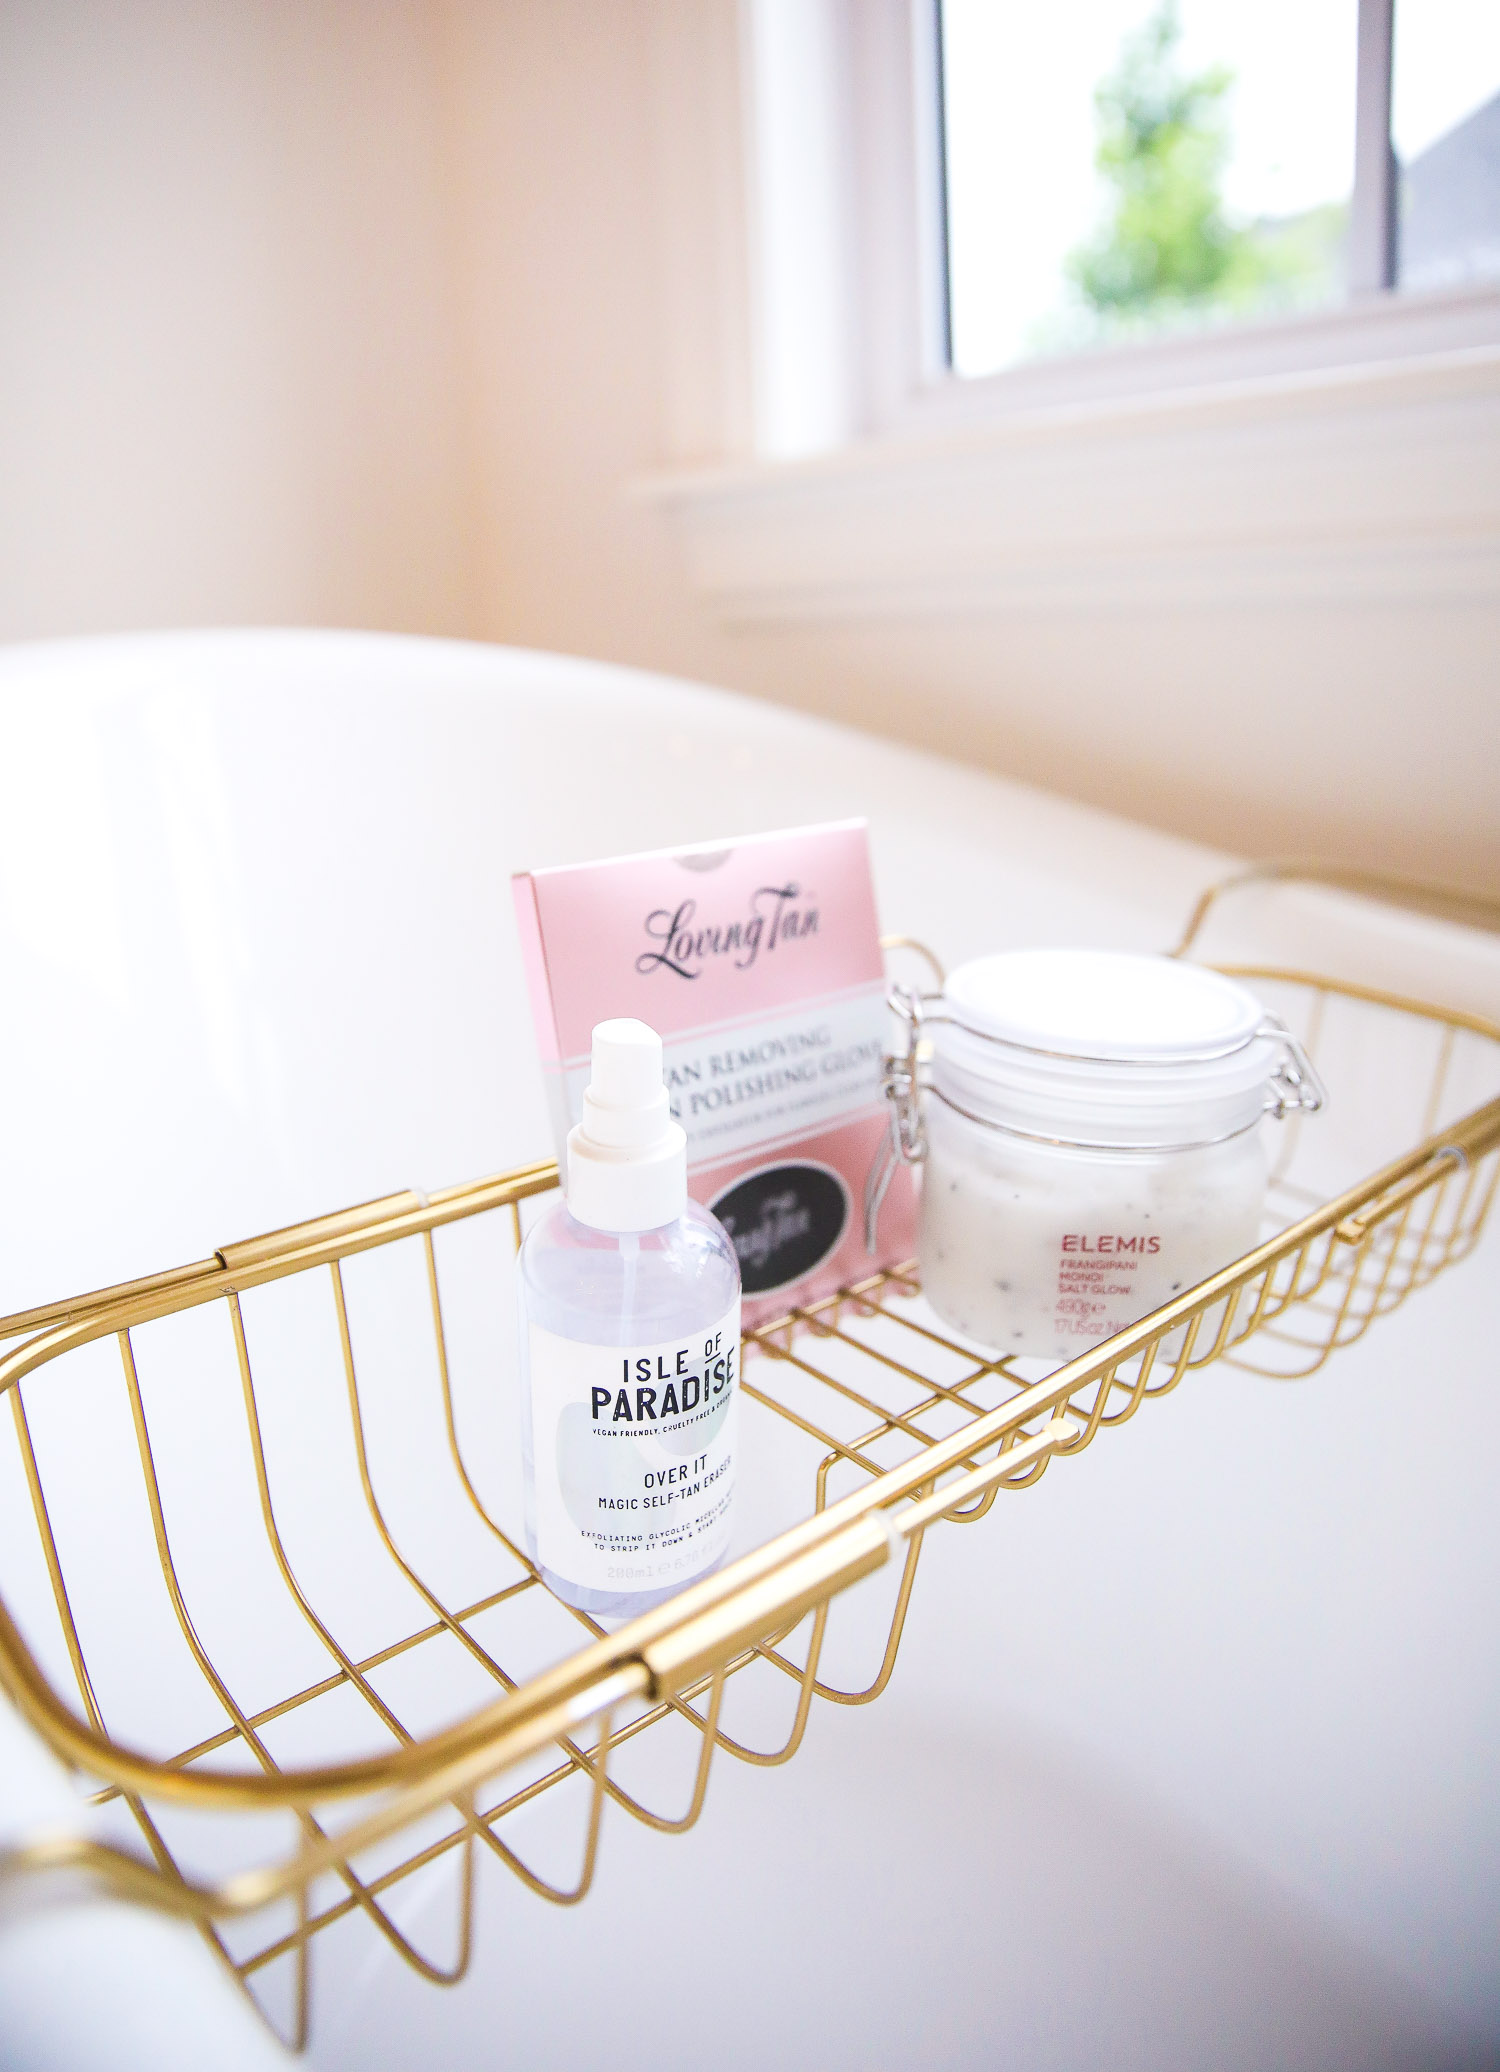 loving tan 2 hour express review, best self tanner, best self tanner remover, isle of paradise self tanner remover, Emily Gemma | Nighttime Routine by popular US beauty blog, The Sweetest Thing: image of white claw foot bathtub with a gold tub rack containing a bottle of isle of Paradise, Loving Tan, and Elemis salt glow.